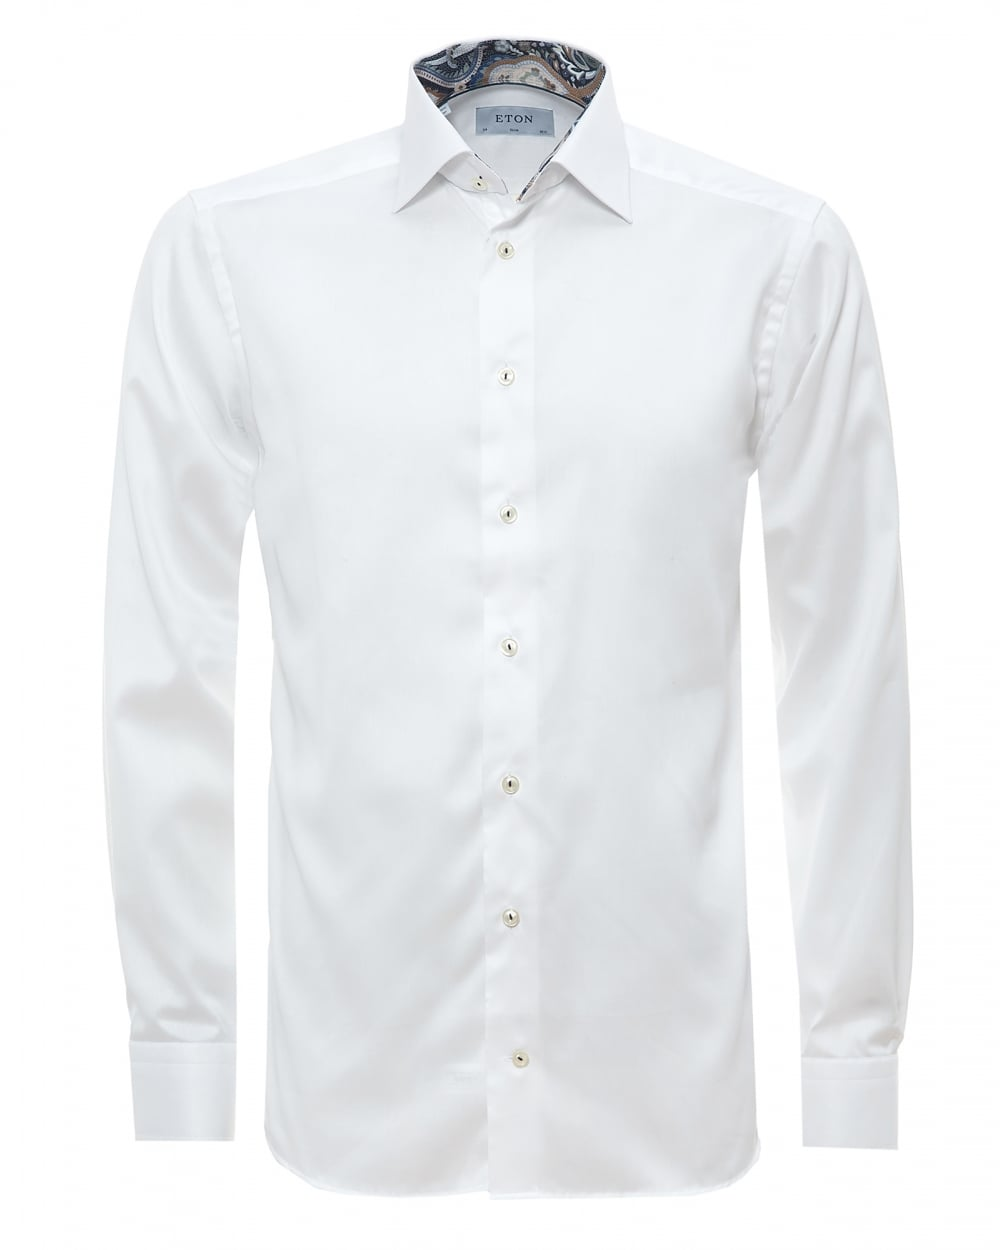 Men's Shirts. Made with the finest cotton, our men's shirts are of the very highest quality. With our wide range of patterns and colours you'll find plenty of variety to keep you looking smarter and sharper.